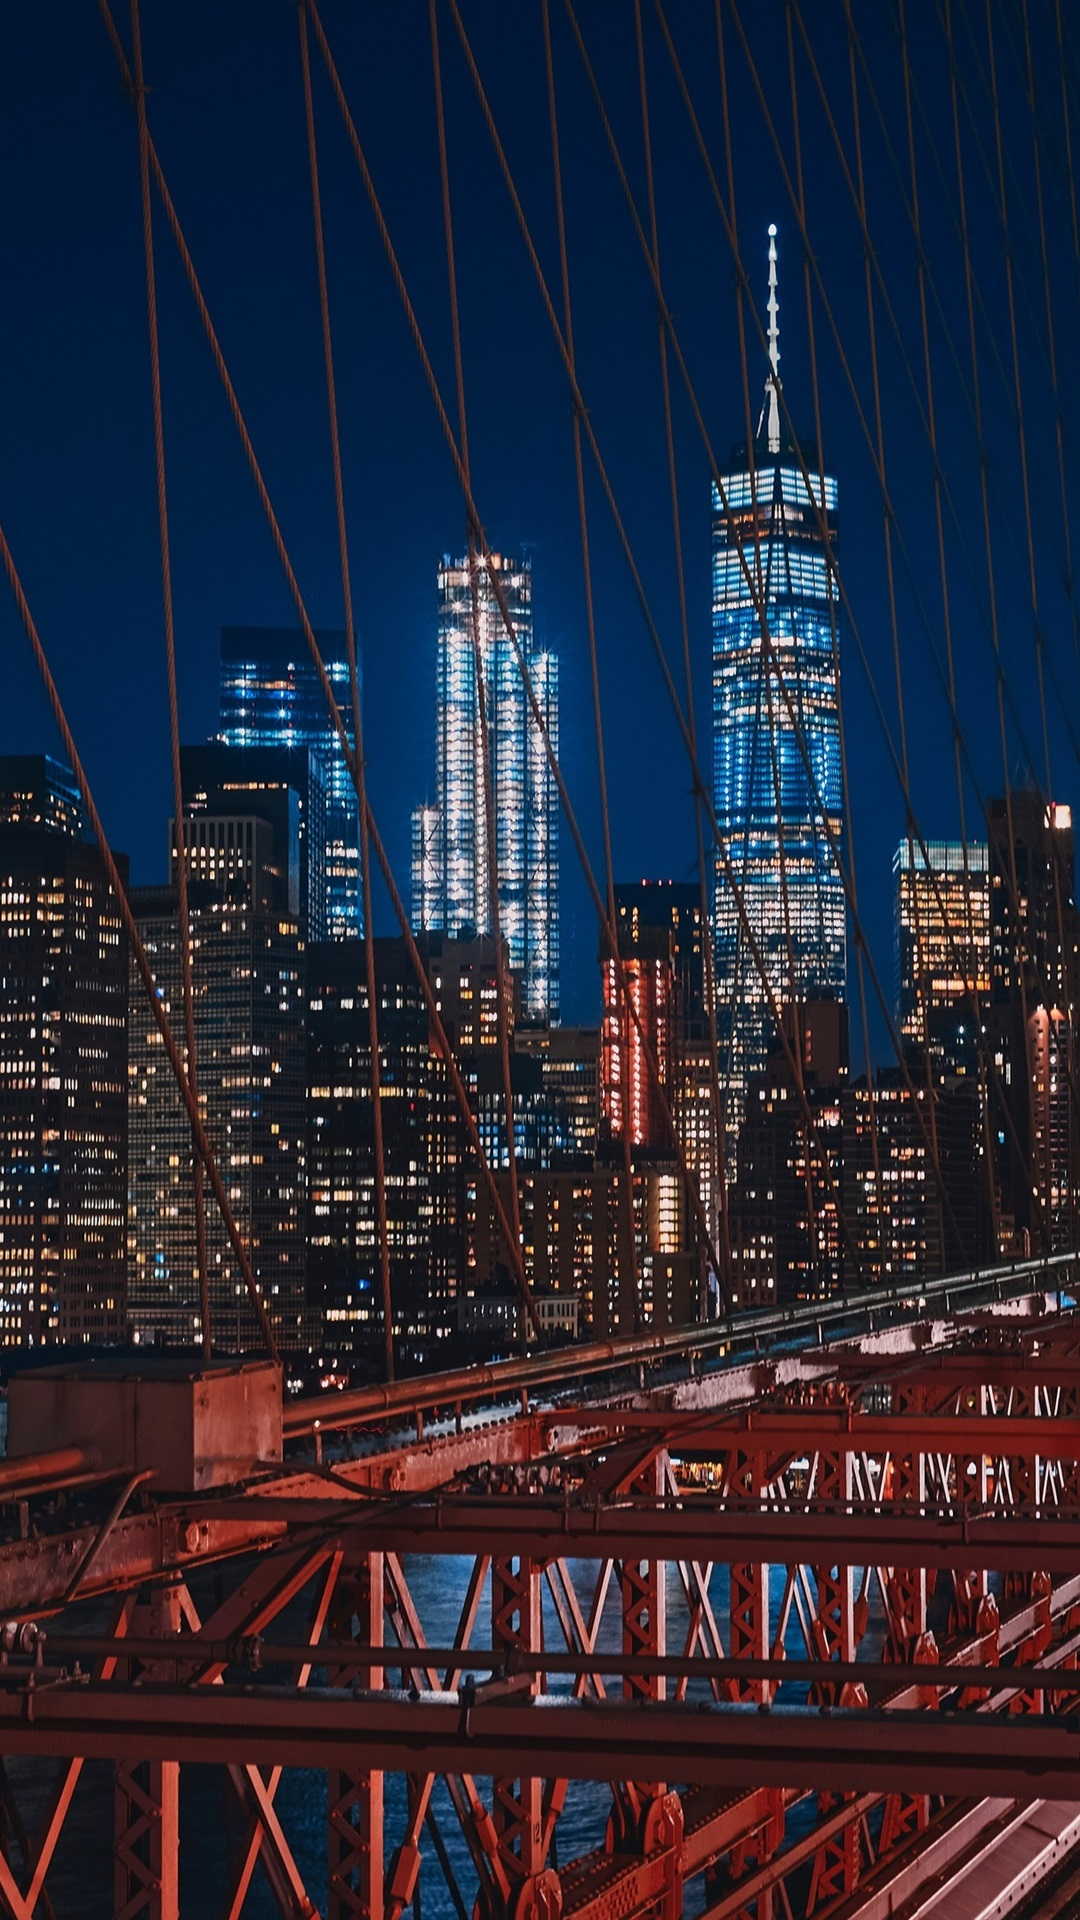 New York Usa Brooklyn Bridge Night Lights 1080x1920 Iphone 8 7 6 6s Plus Wallpaper Background Picture Image